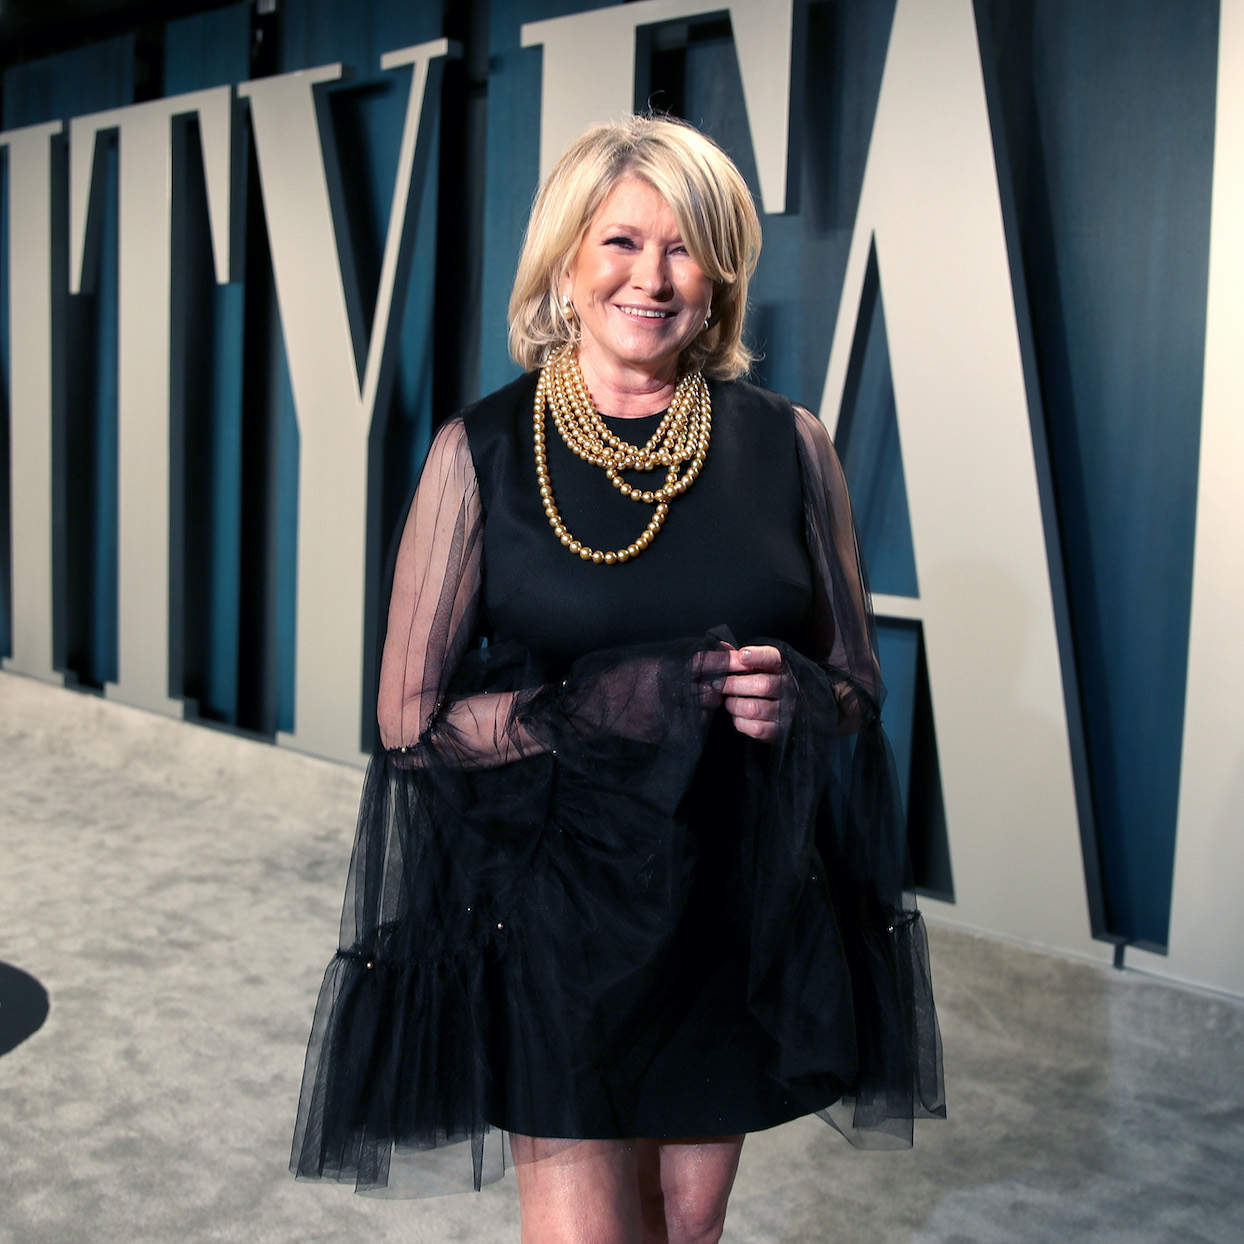 Martha Stewart attends the 2020 Vanity Fair Oscar Party hosted by Radhika Jones at Wallis Annenberg Center for the Performing Arts on February 09, 2020 in Beverly Hills, California